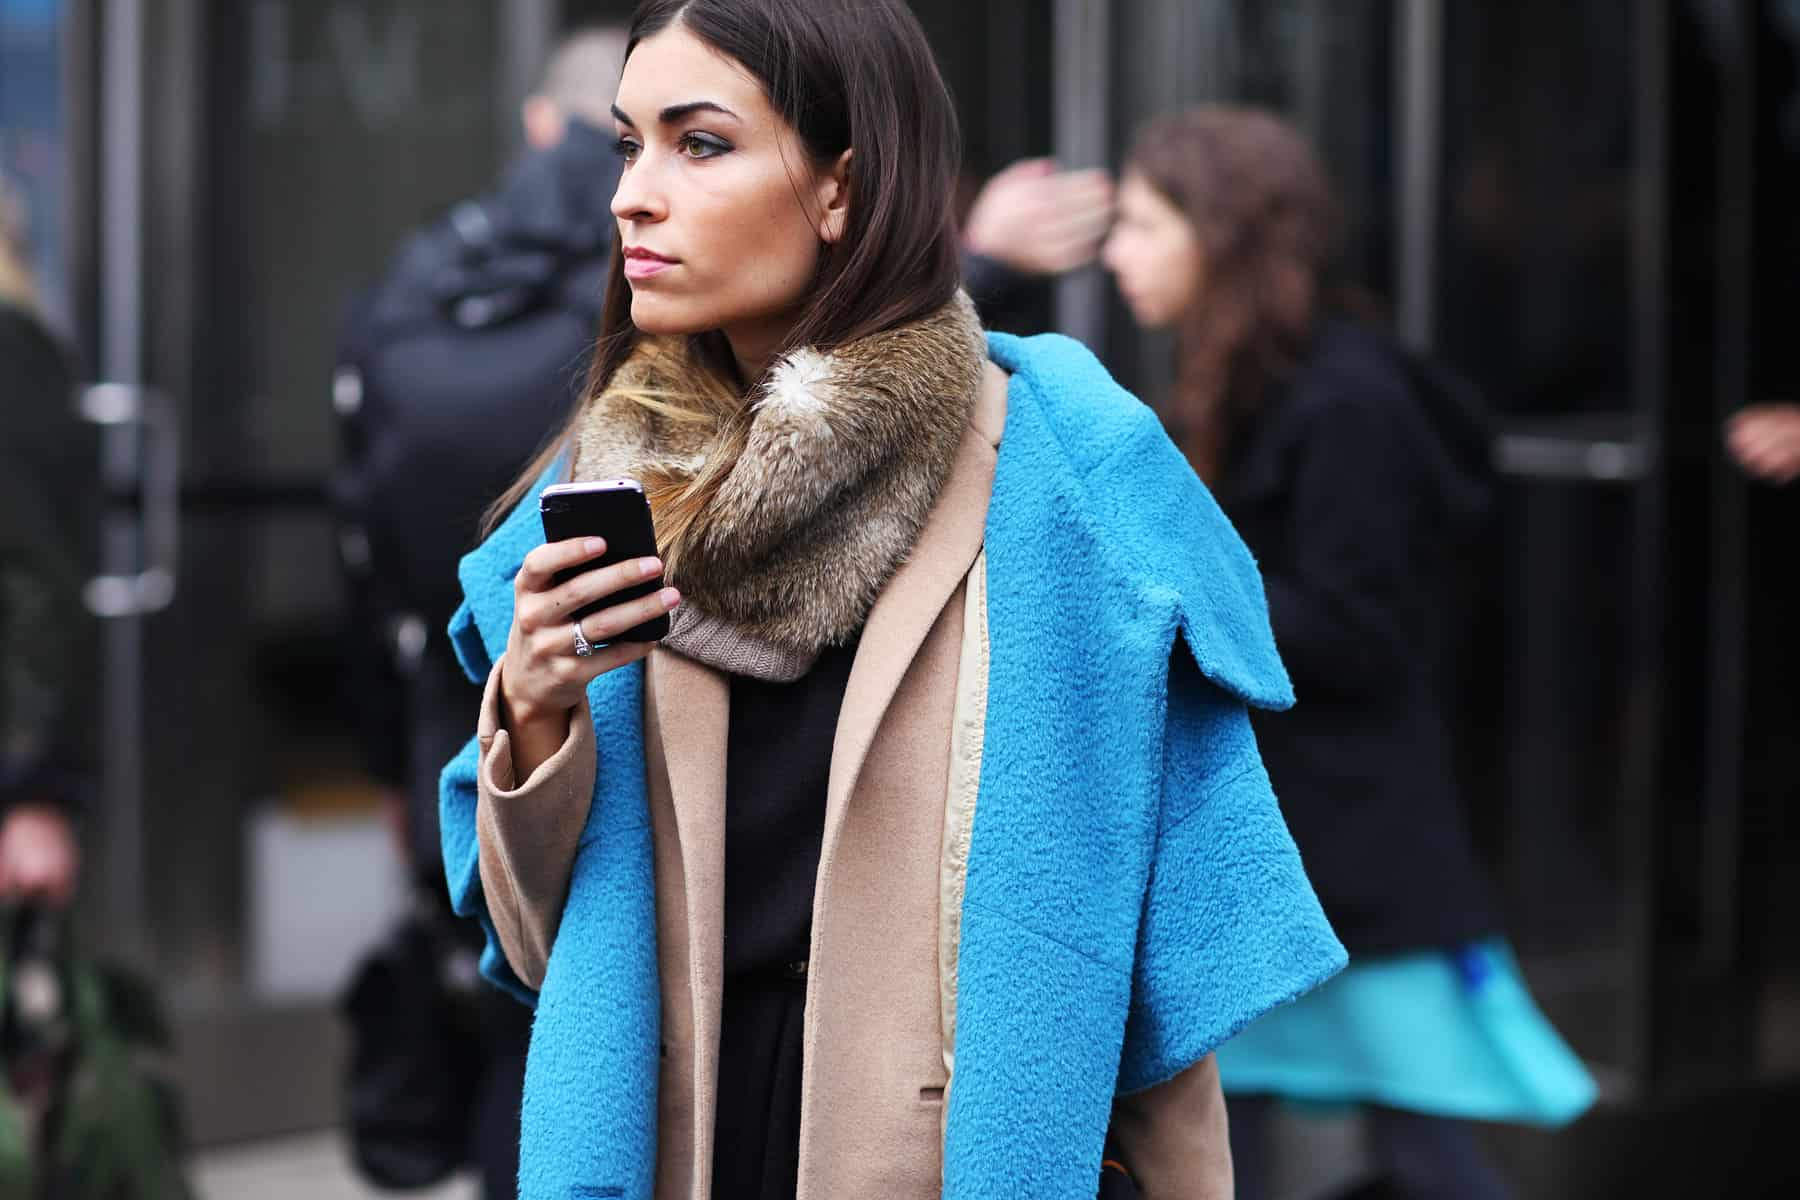 street-style-layers-10